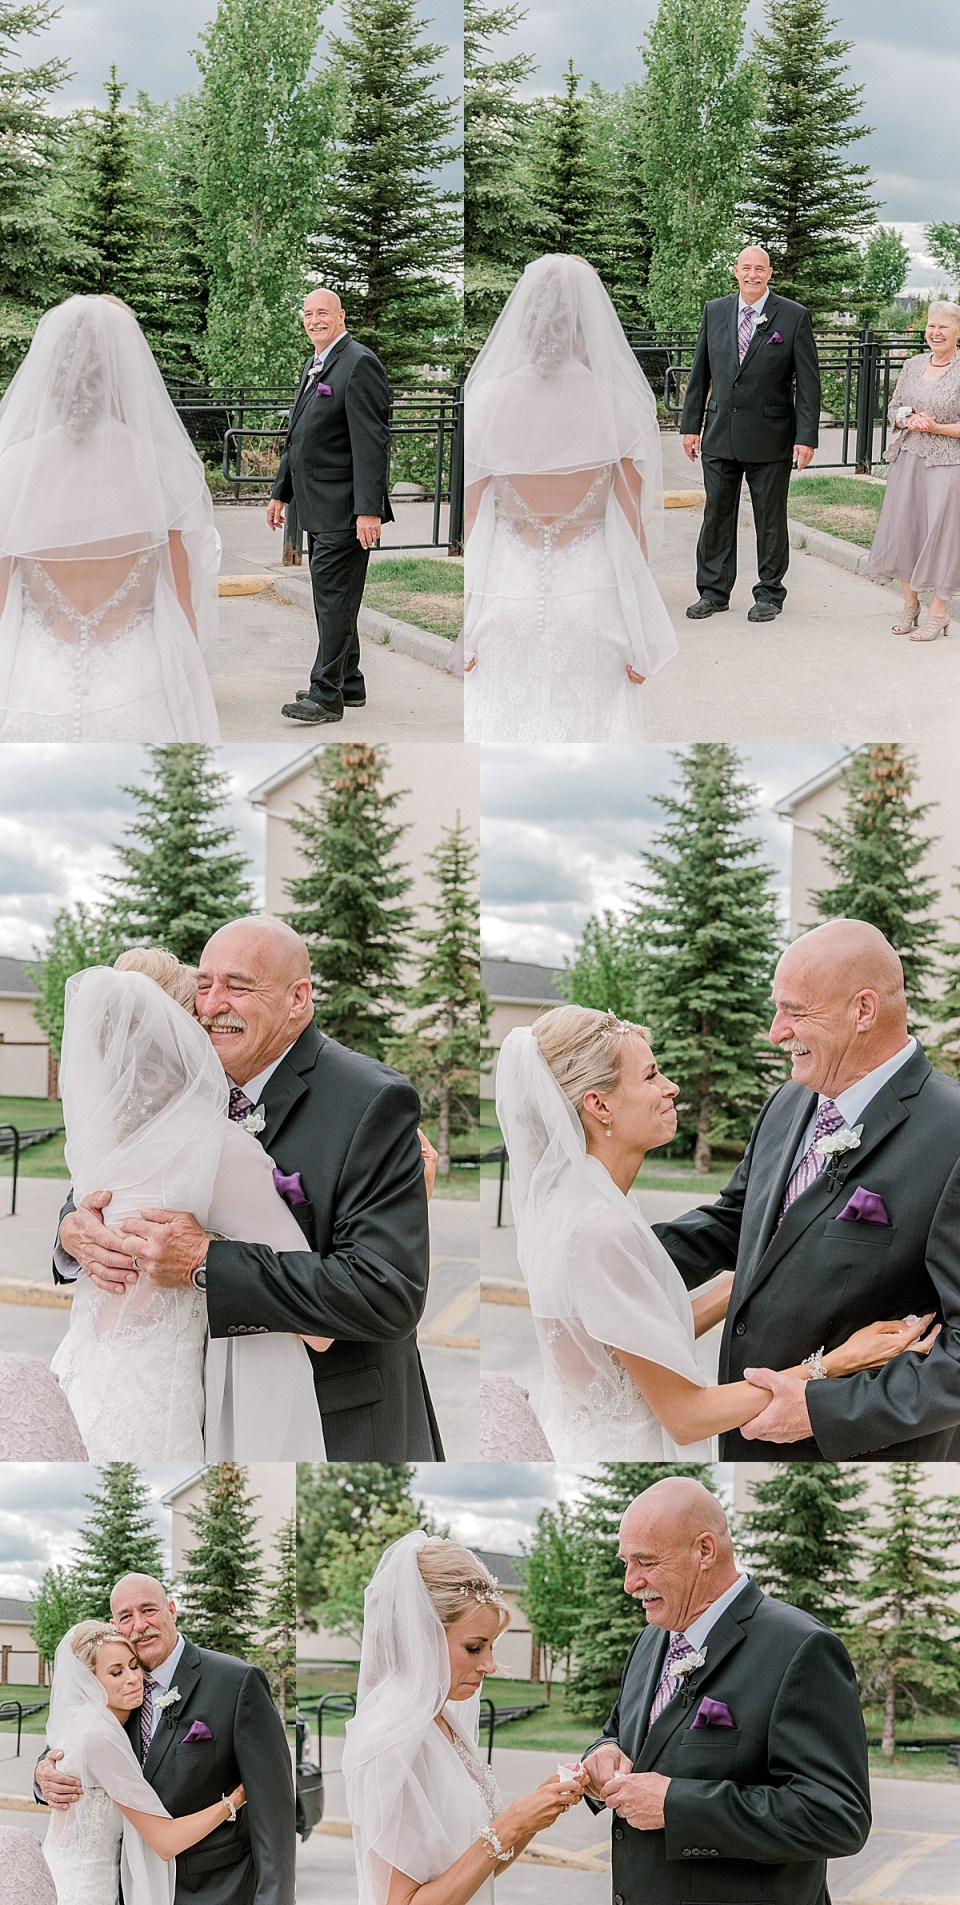 daddy-daughter-first-look-before-ceremony-wedding-at-saskatoon-farm-near-calgary-raelene-schulmeister-photography